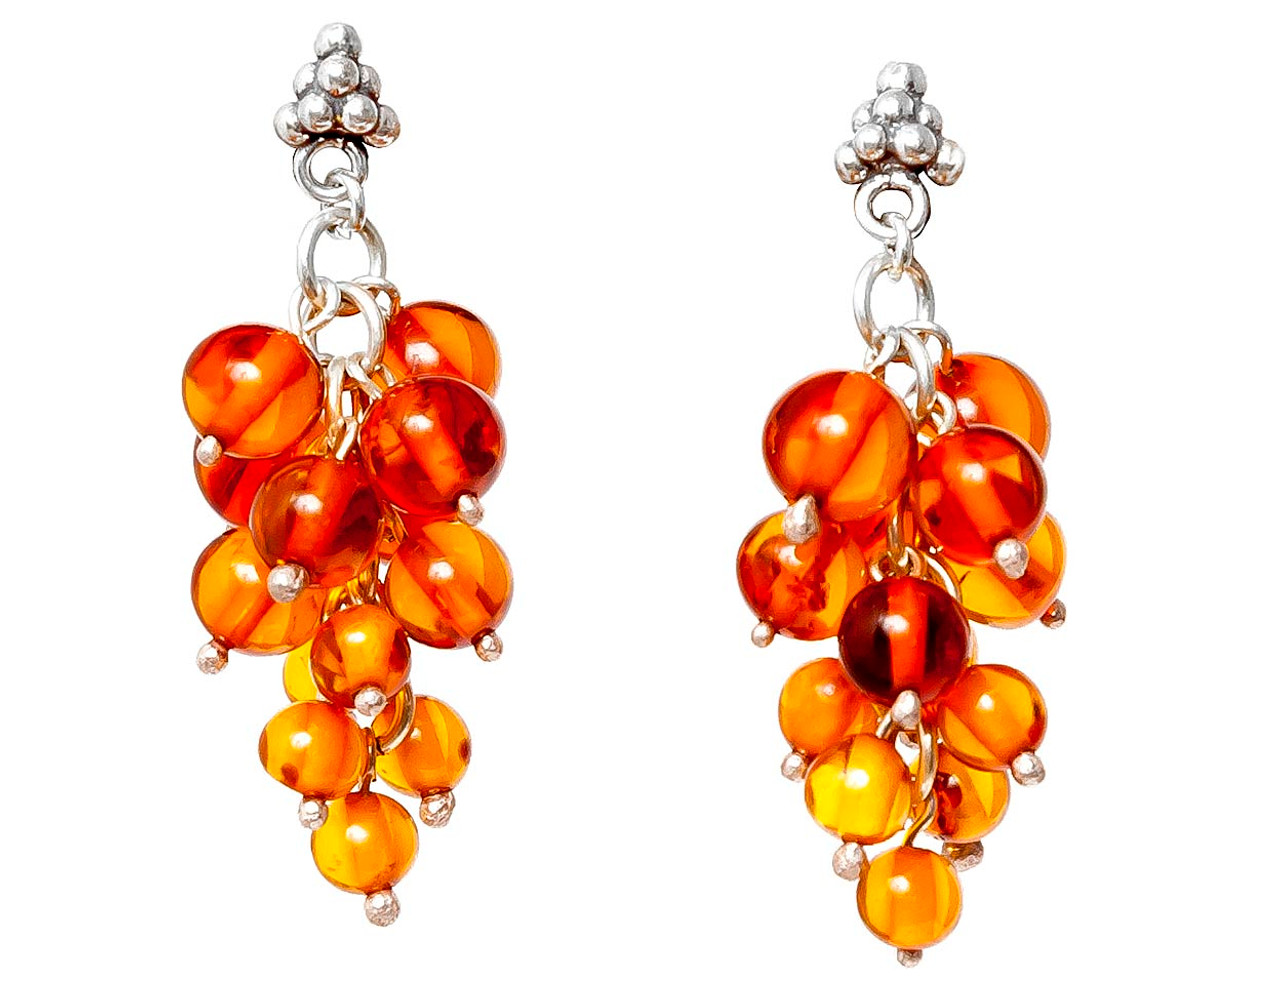 Unbelievable Hanging Heart/'s Baltic Amber Earrings on Silver 925